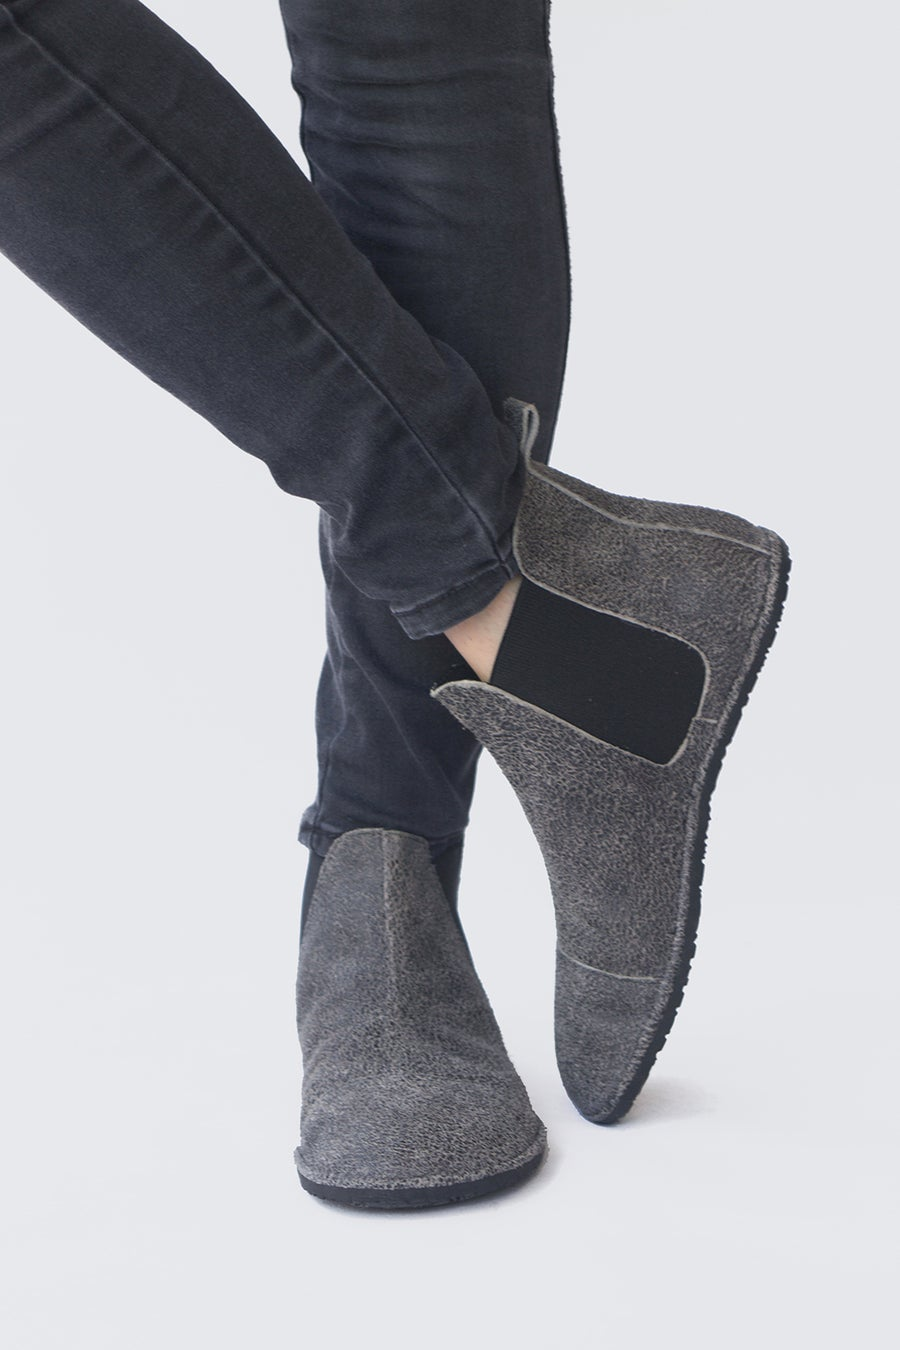 Image of Chelsea boots in Cracked Coal suede